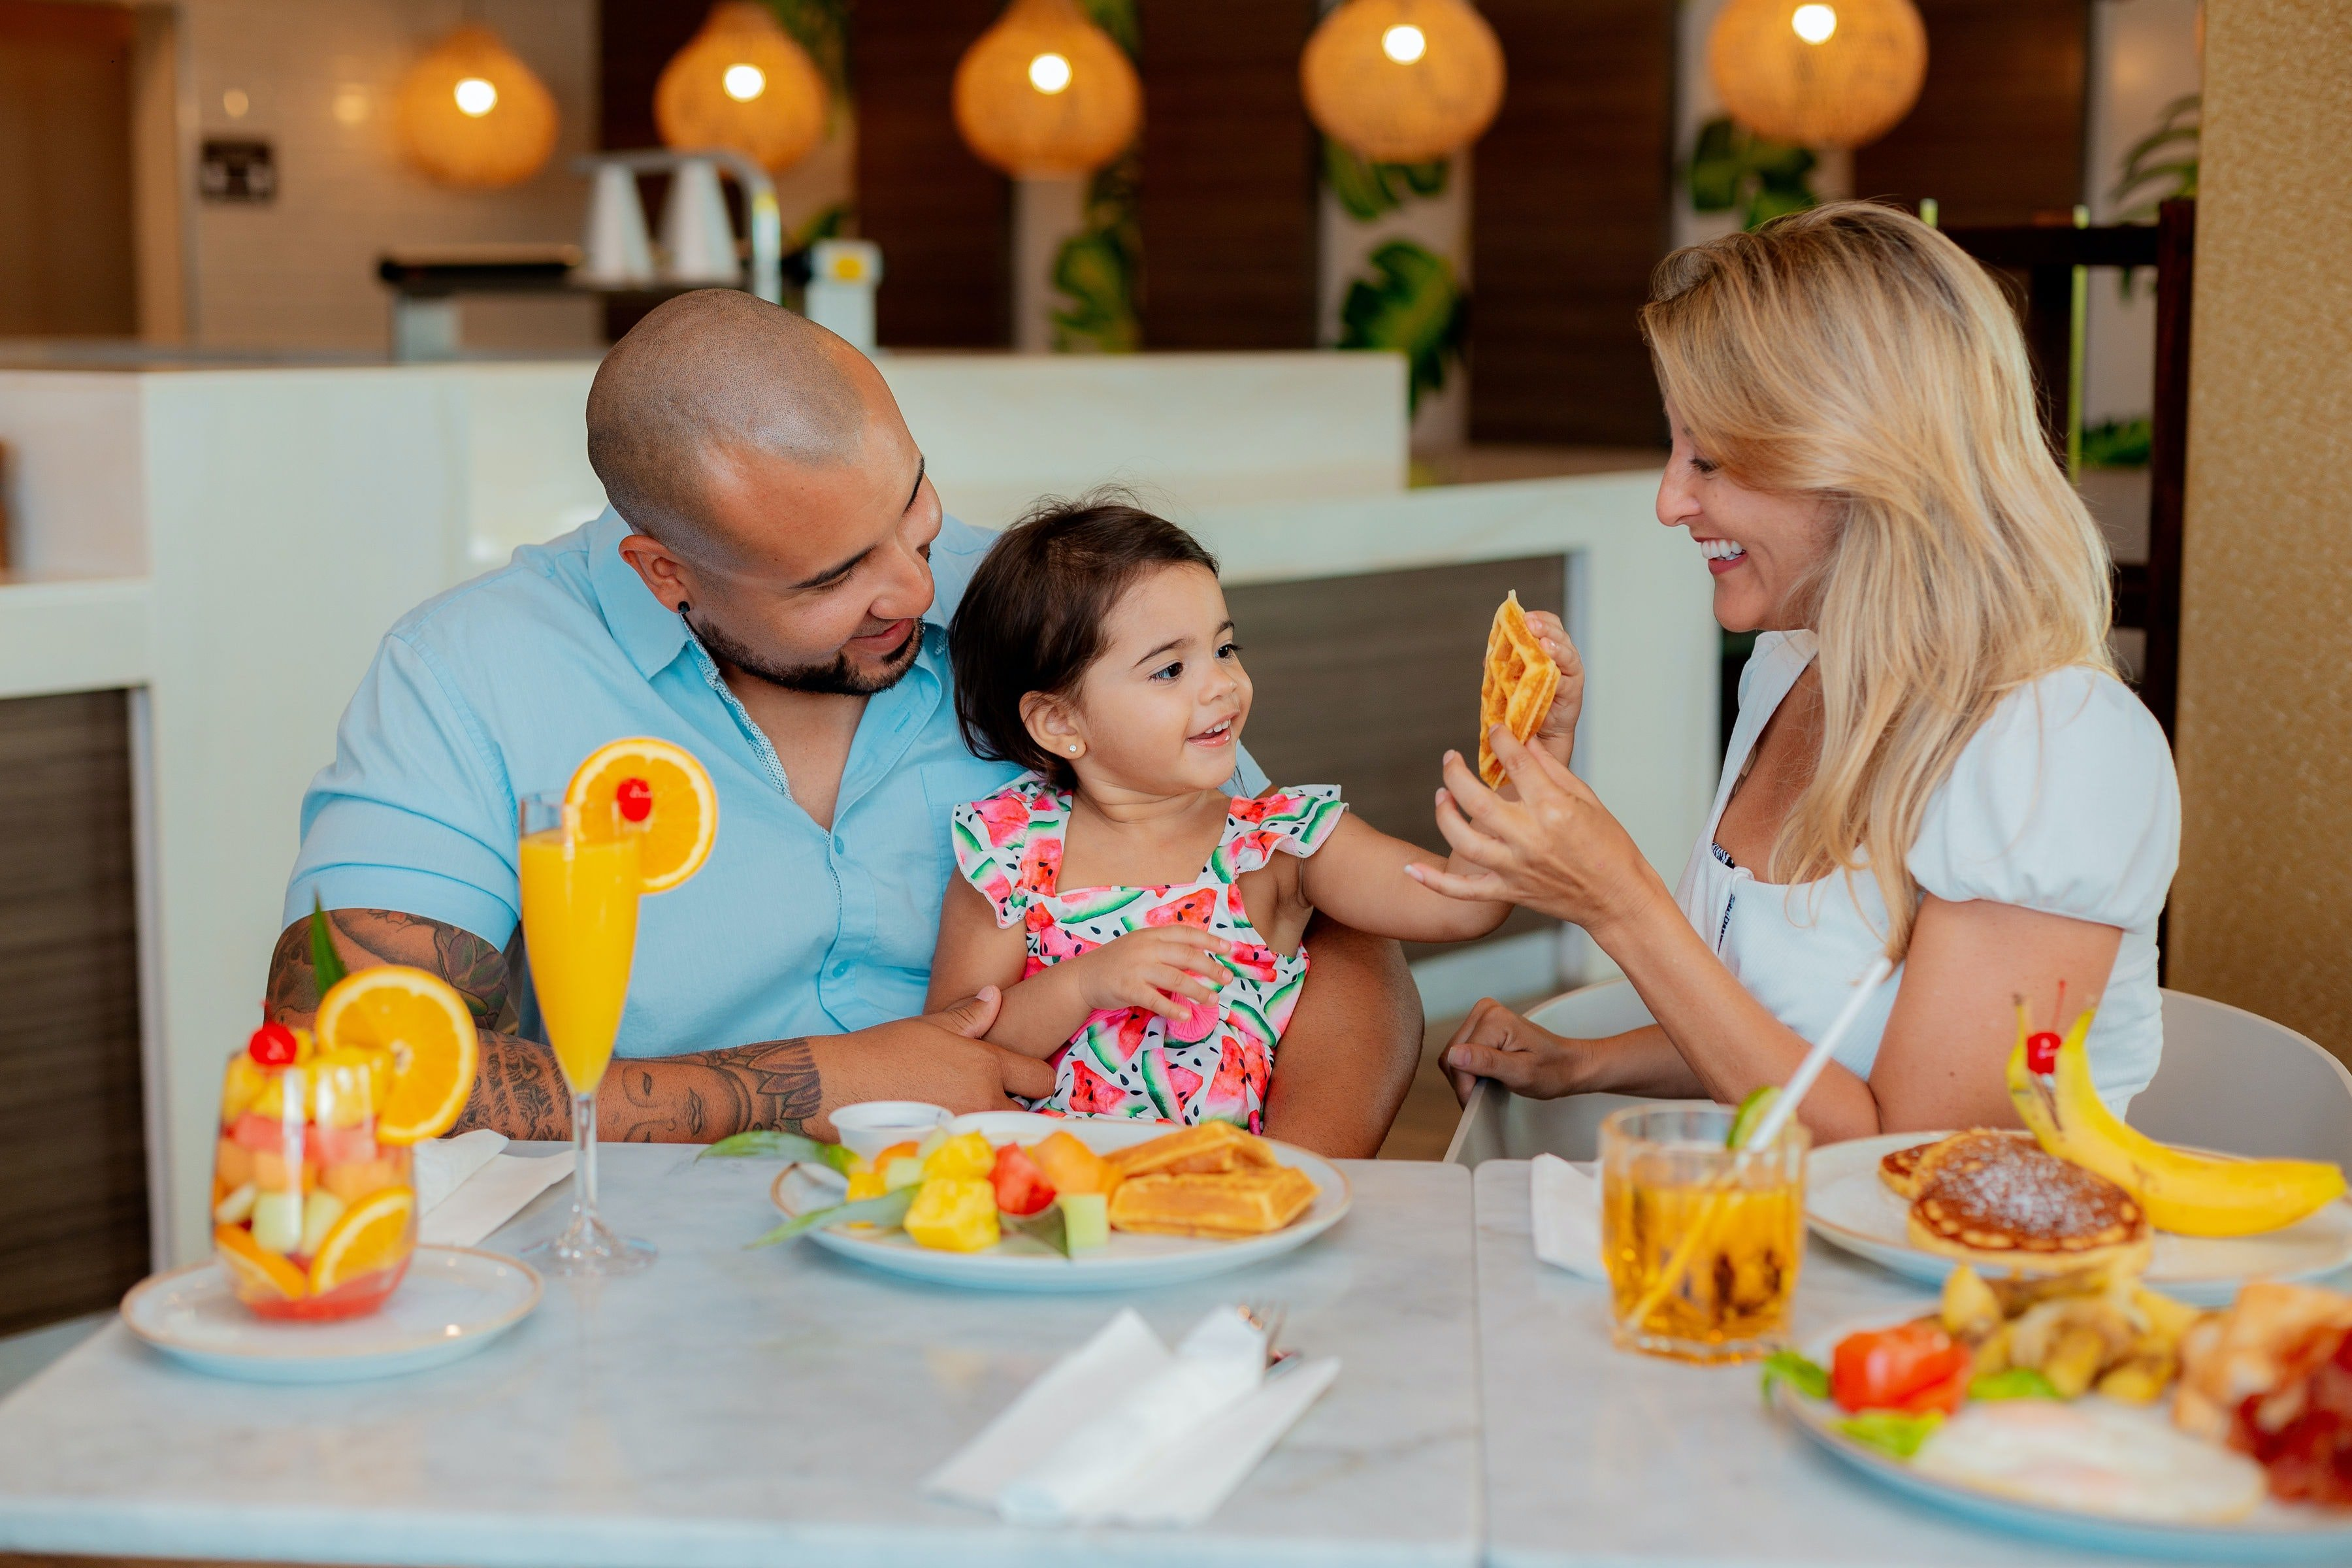 Couple dining in a restaurant with their kid | Photo: Unsplash